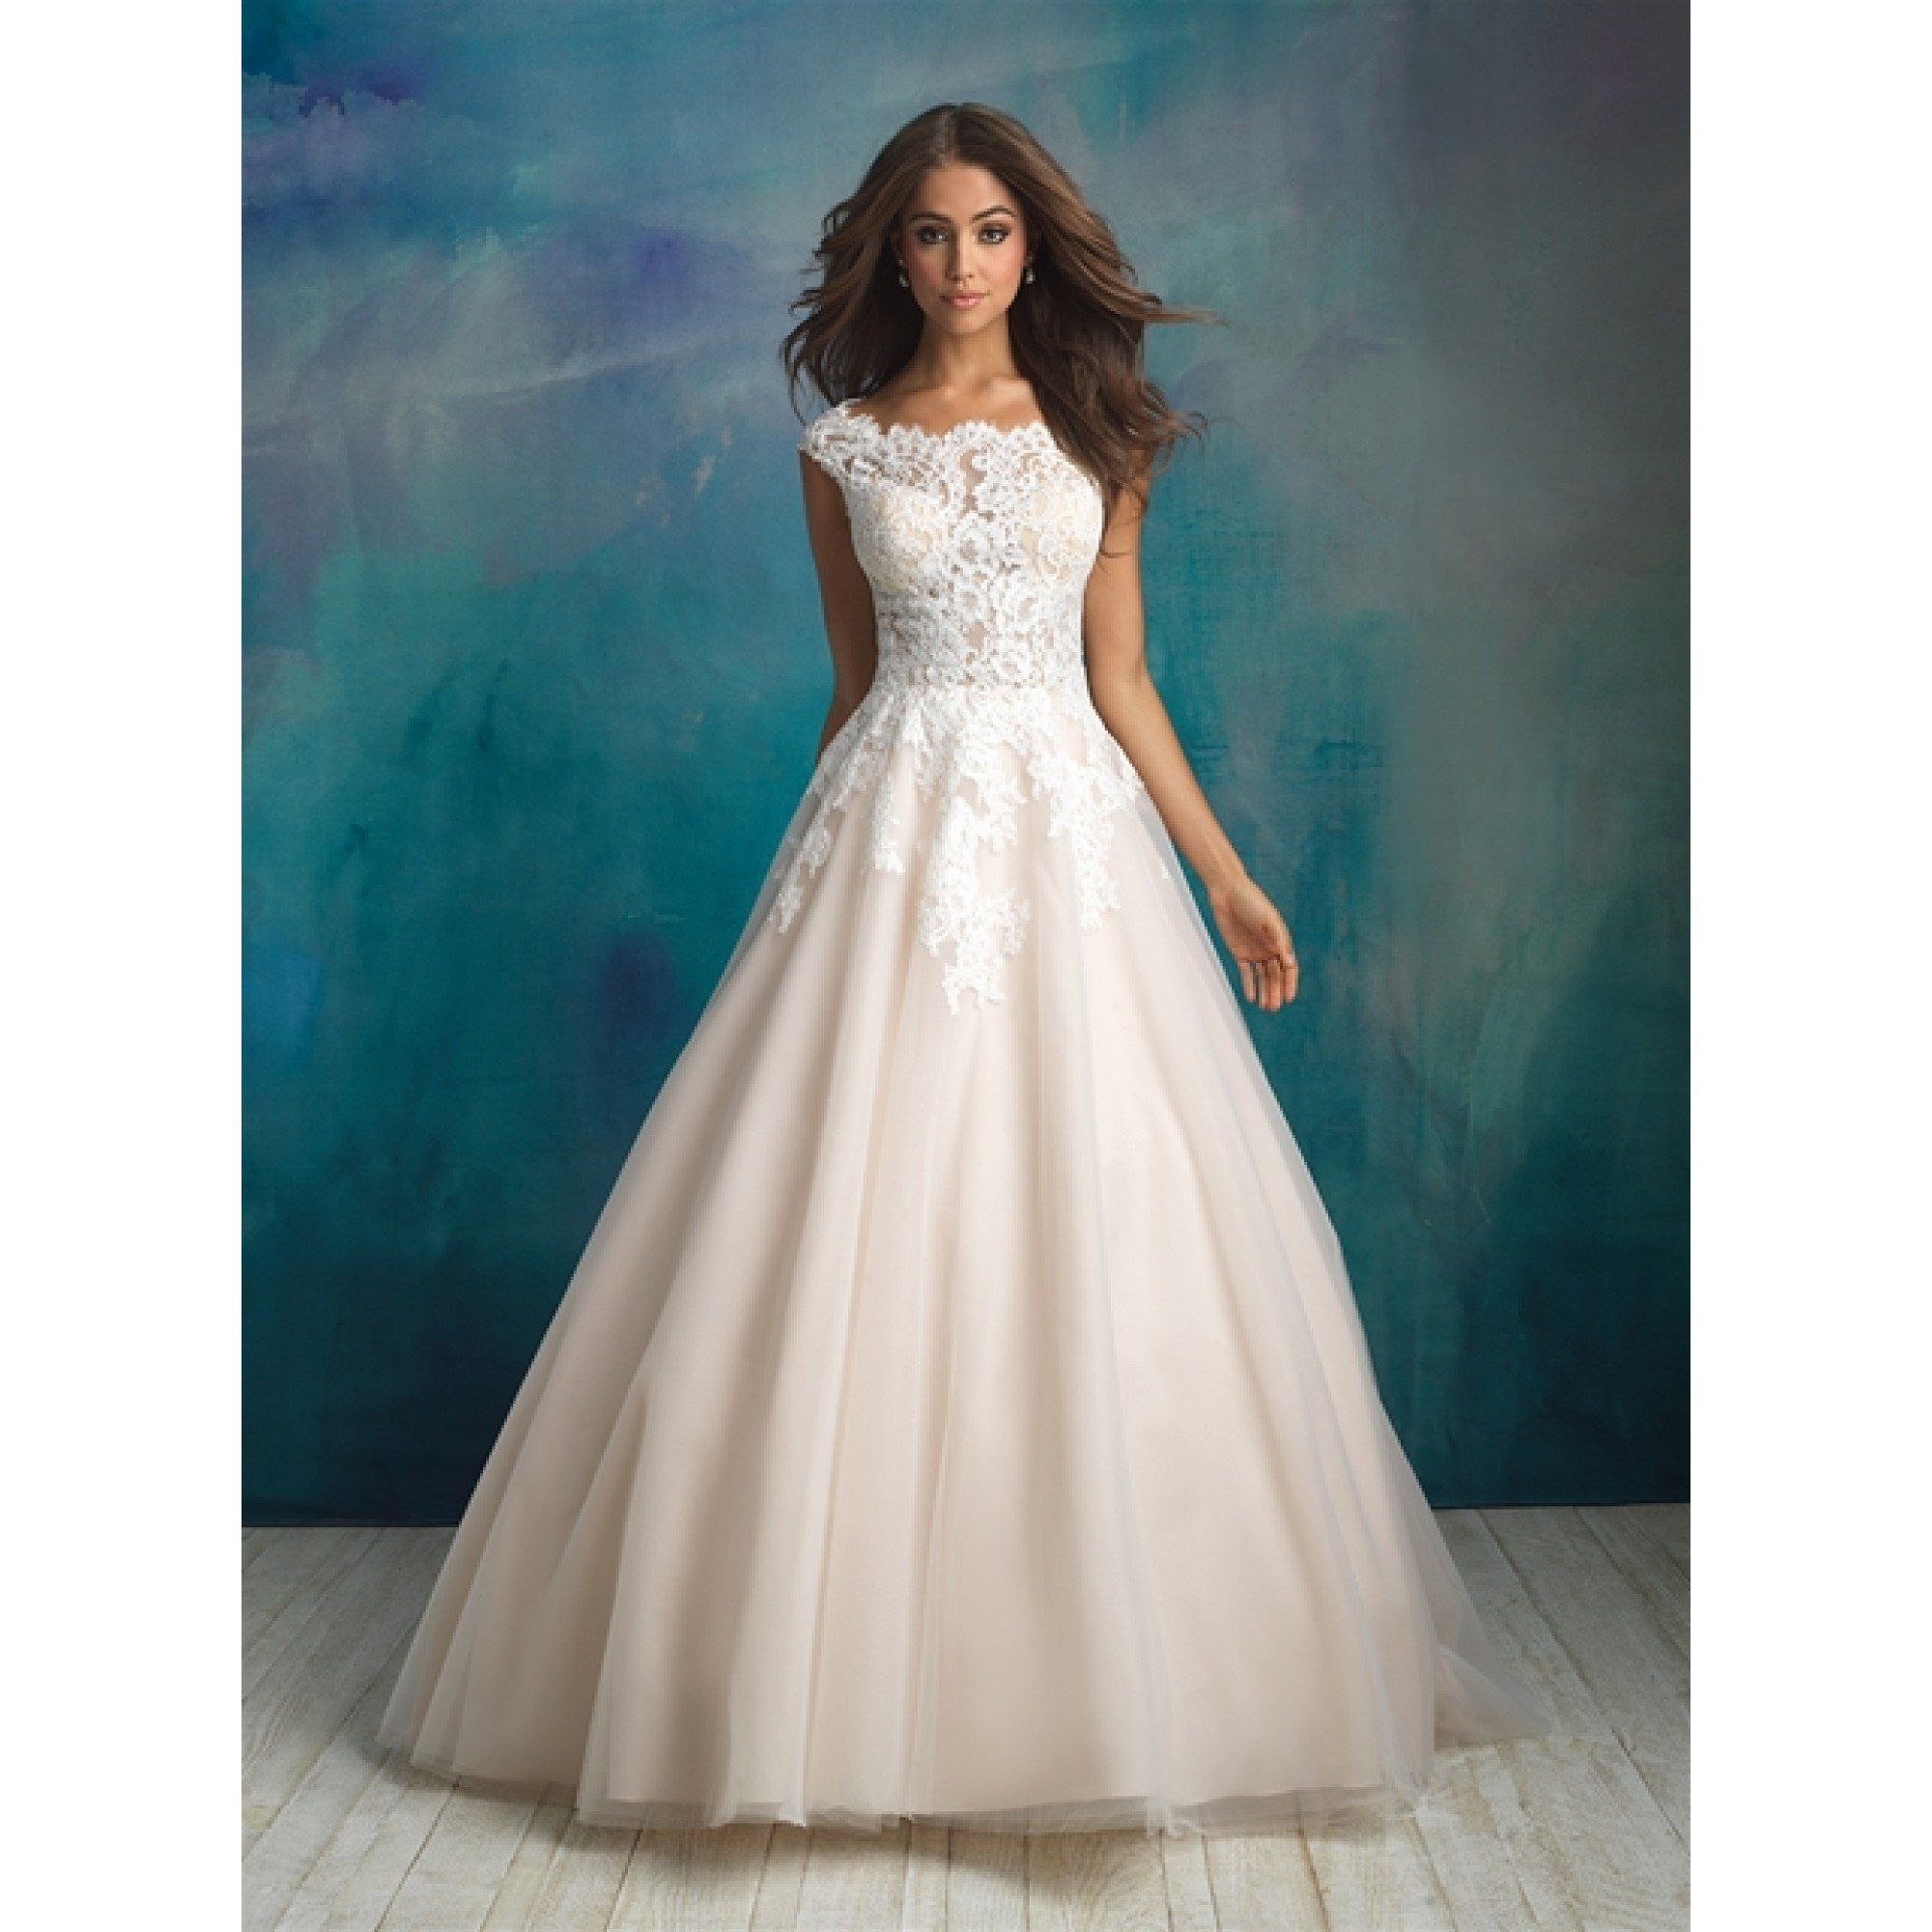 Modern Wedding Dress Shops In Tampa Fl Frieze - All Wedding Dresses ...